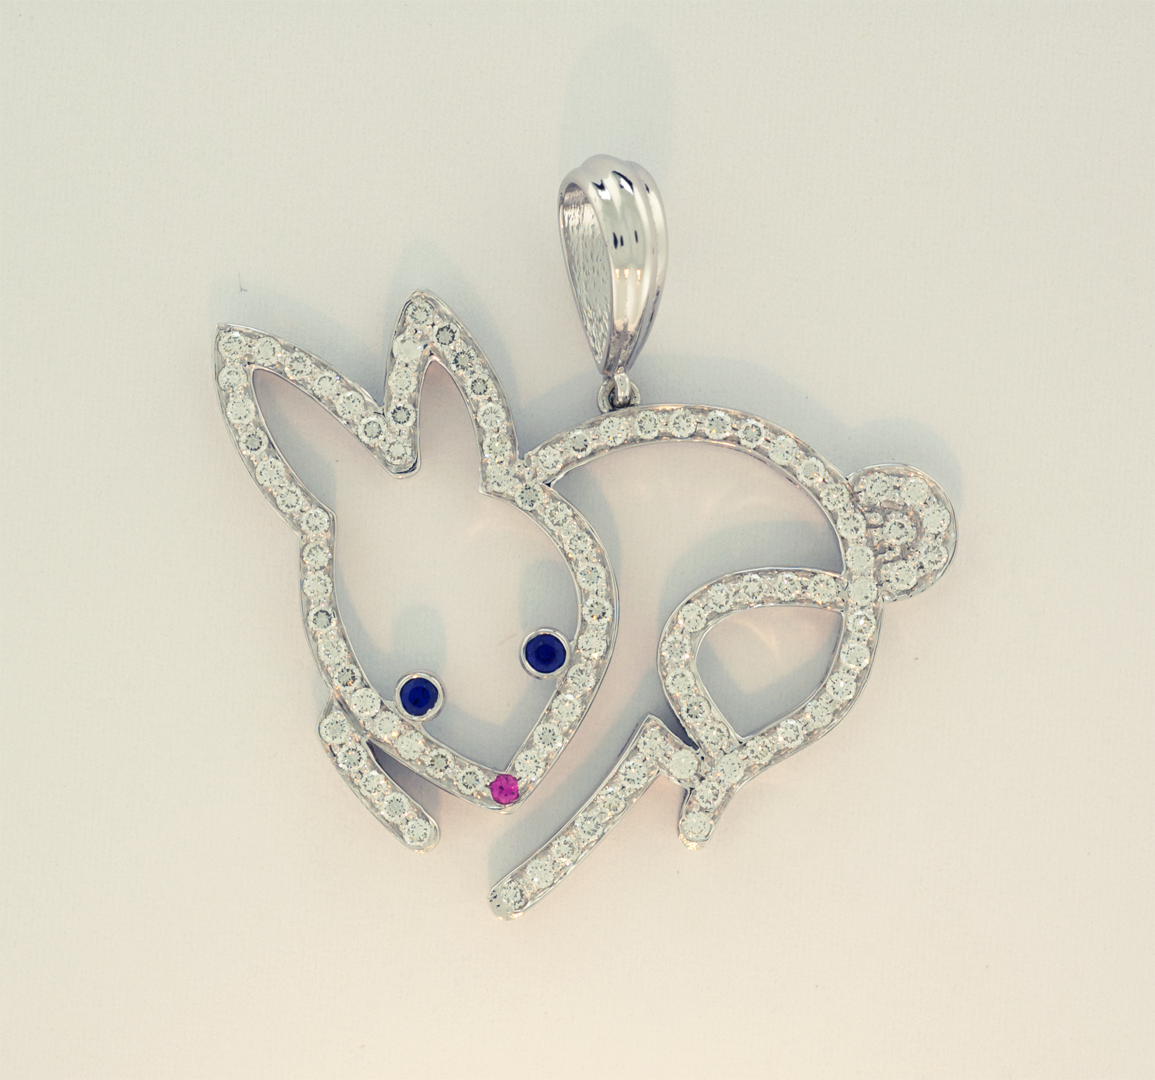 Diamond pavé bunny pendant with sapphire accents in  14KT white gold